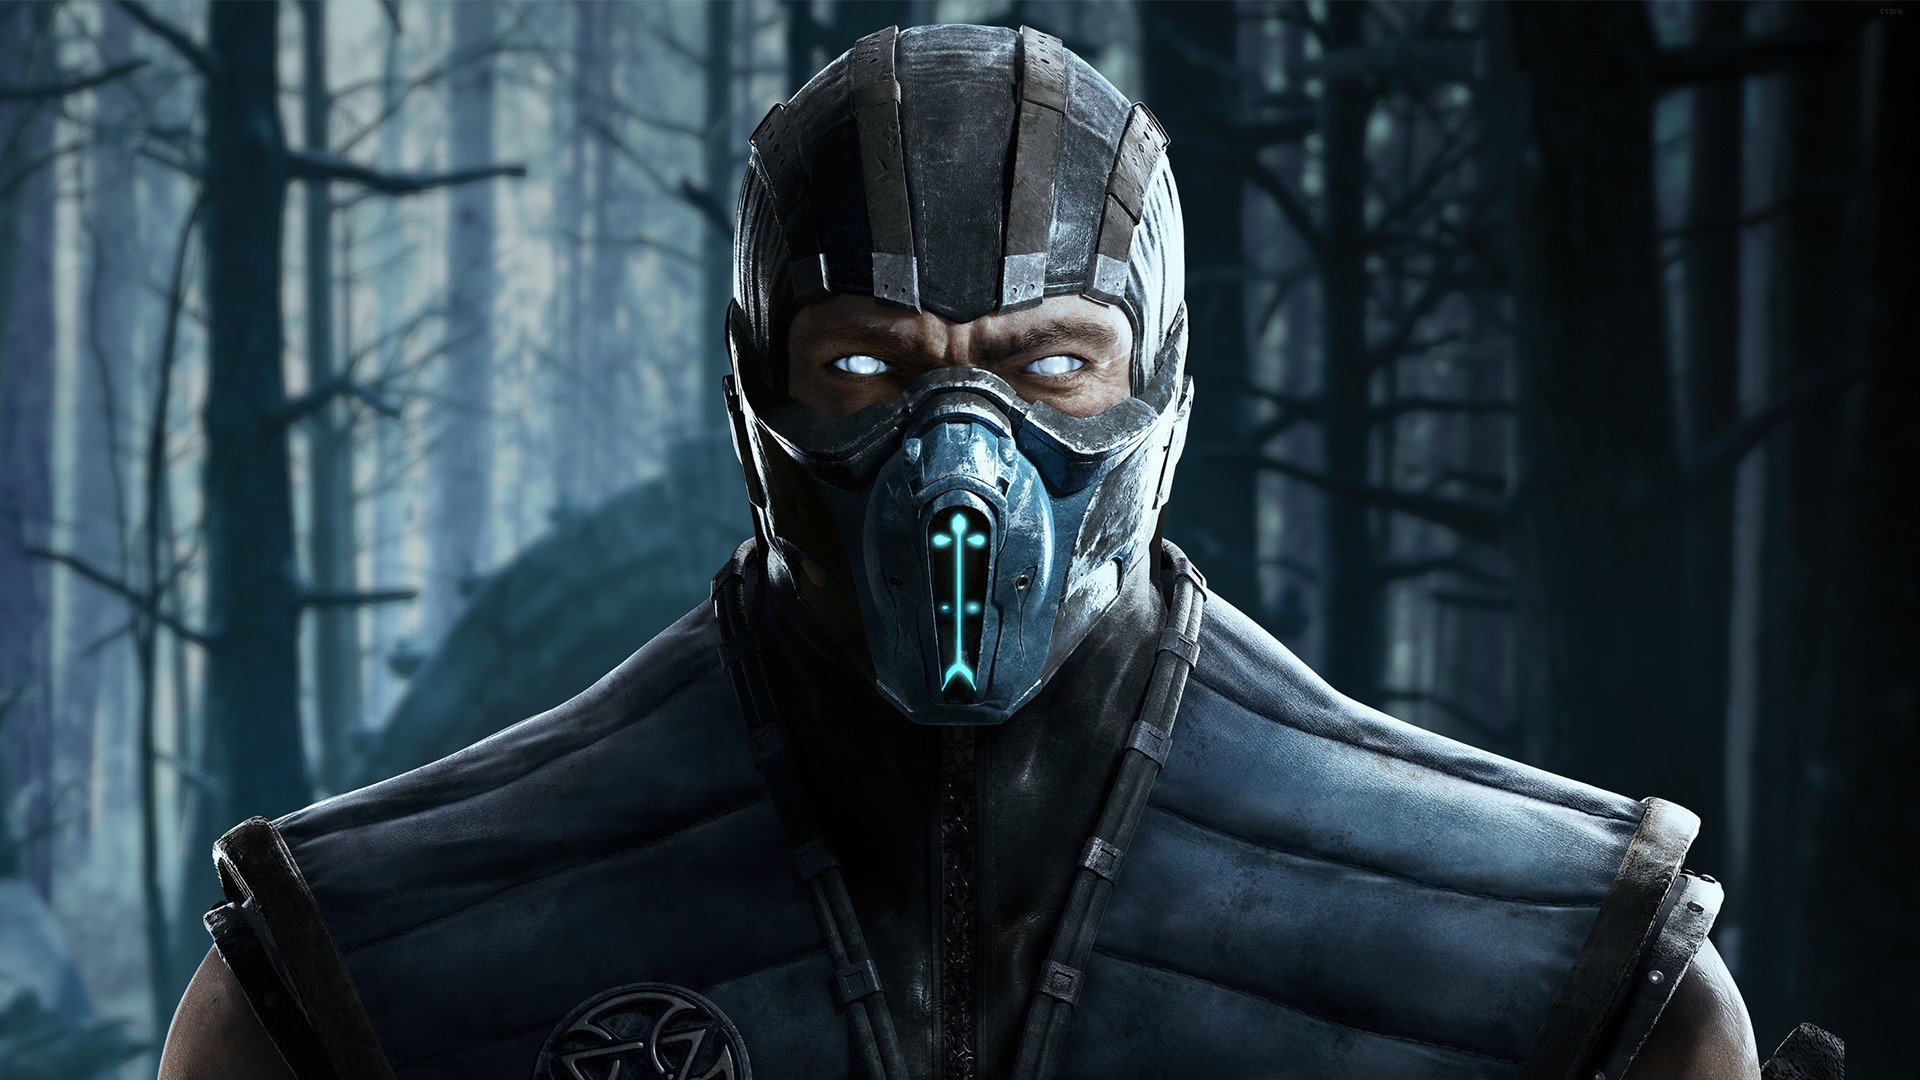 Mortal Kombat X Wallpaper Sub Zero - photo#23